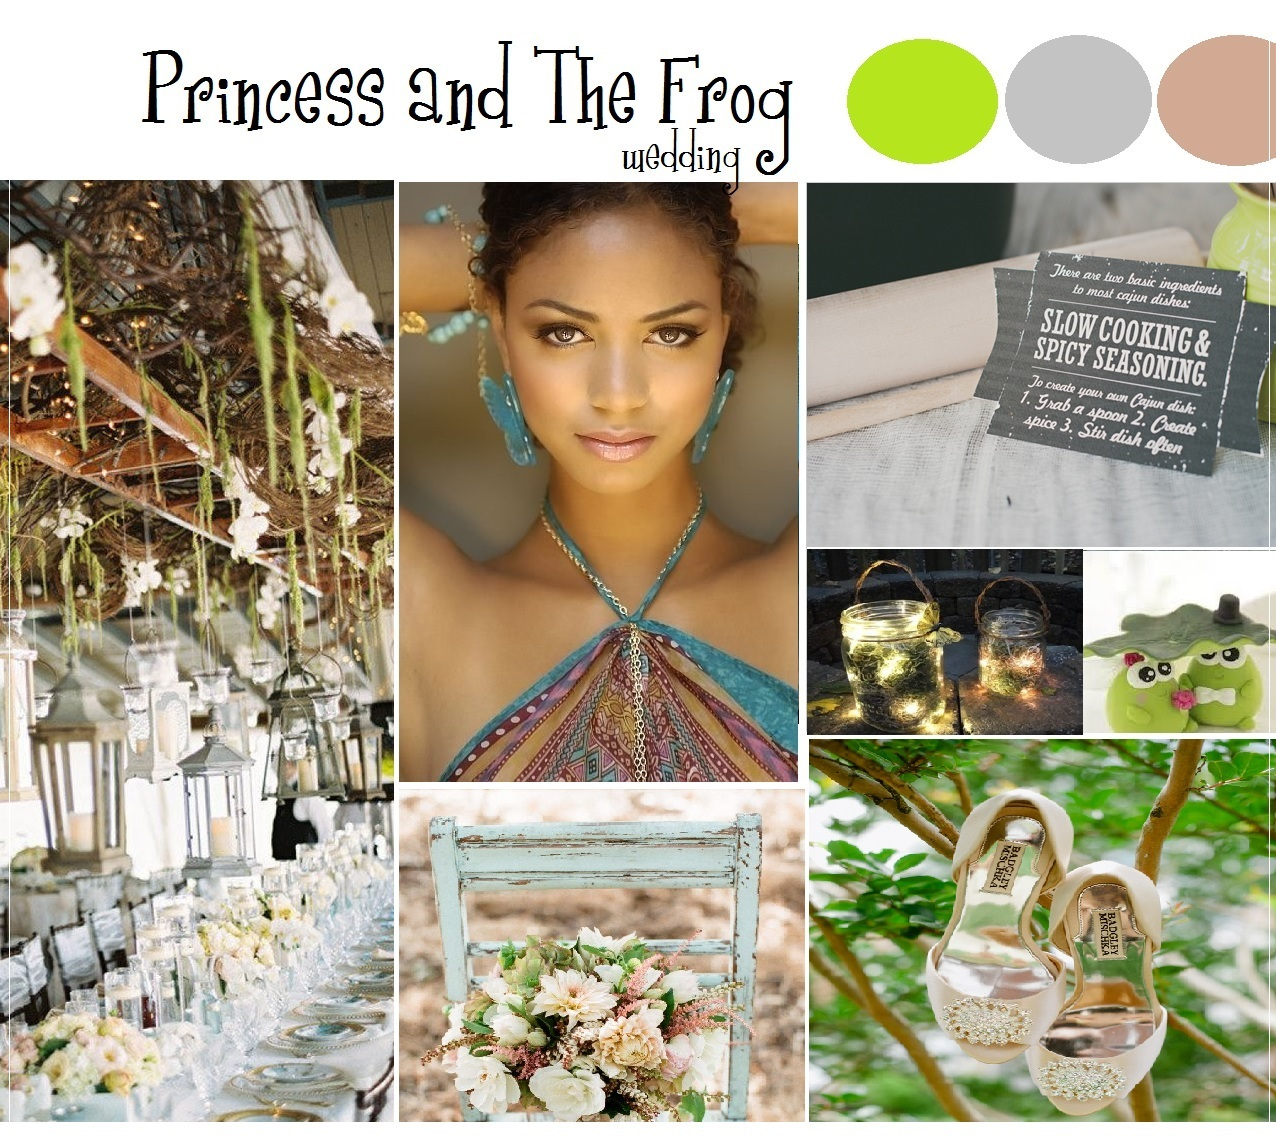 Princess and the frog Disney wedding ideas